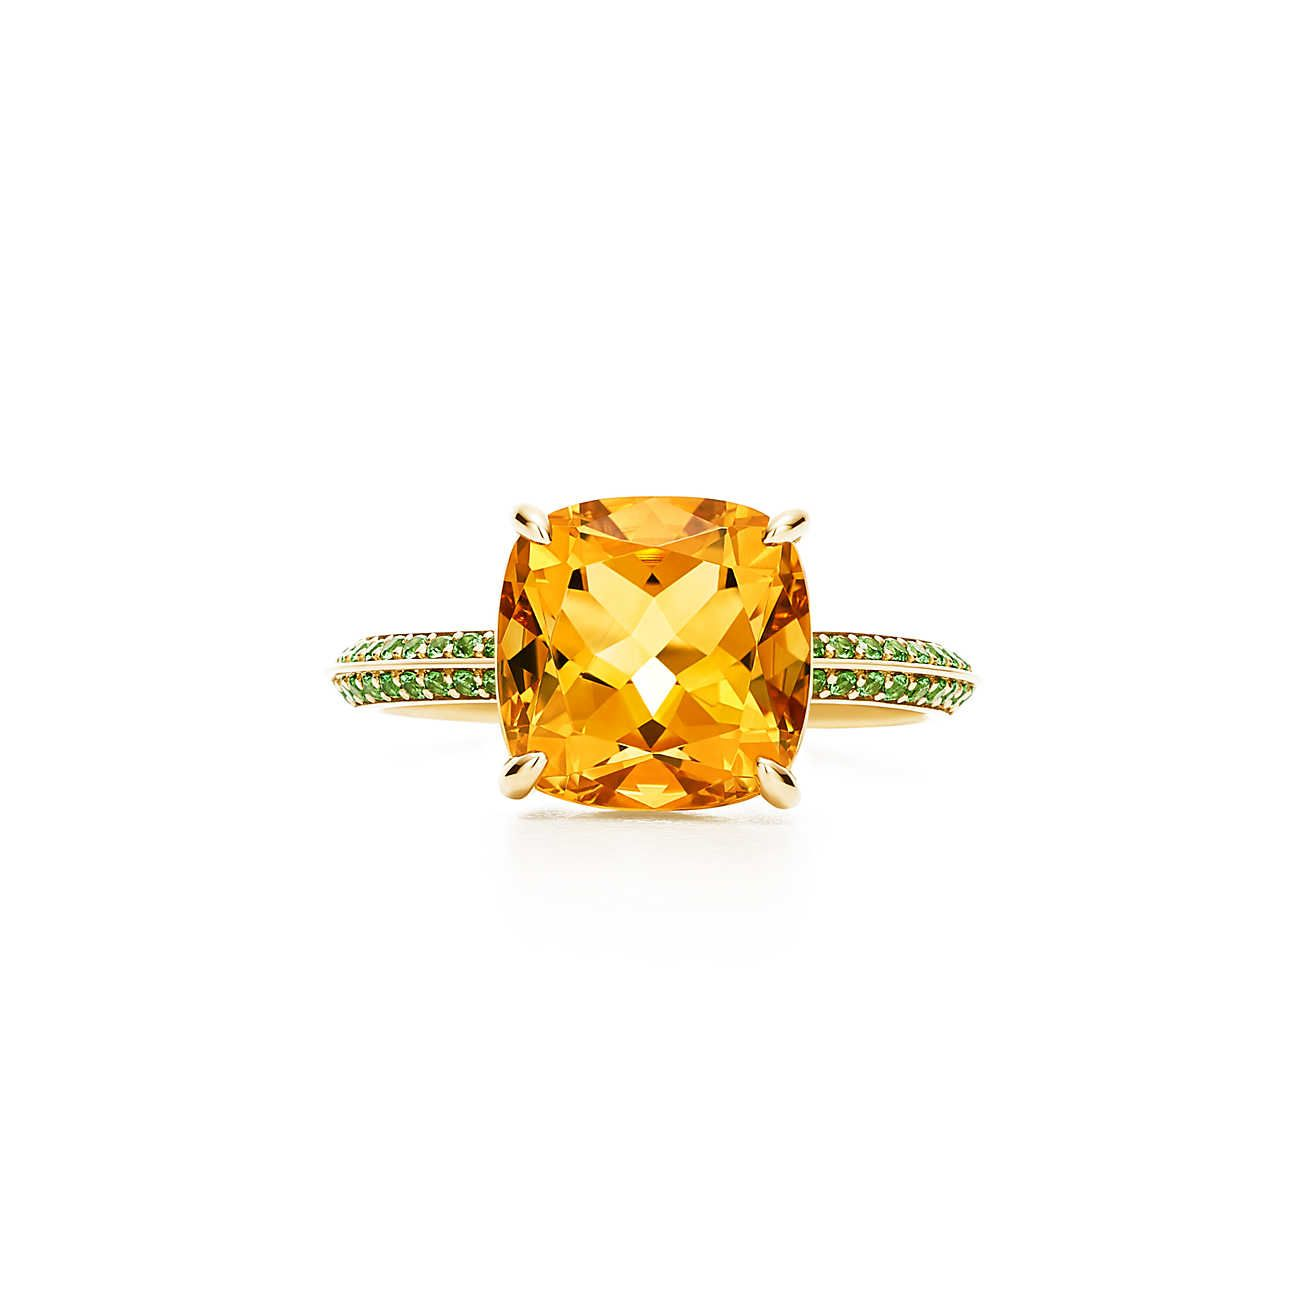 af9bbb5a1 Tiffany Sparklers ring in 18k gold with a citrine and round tsavorites.